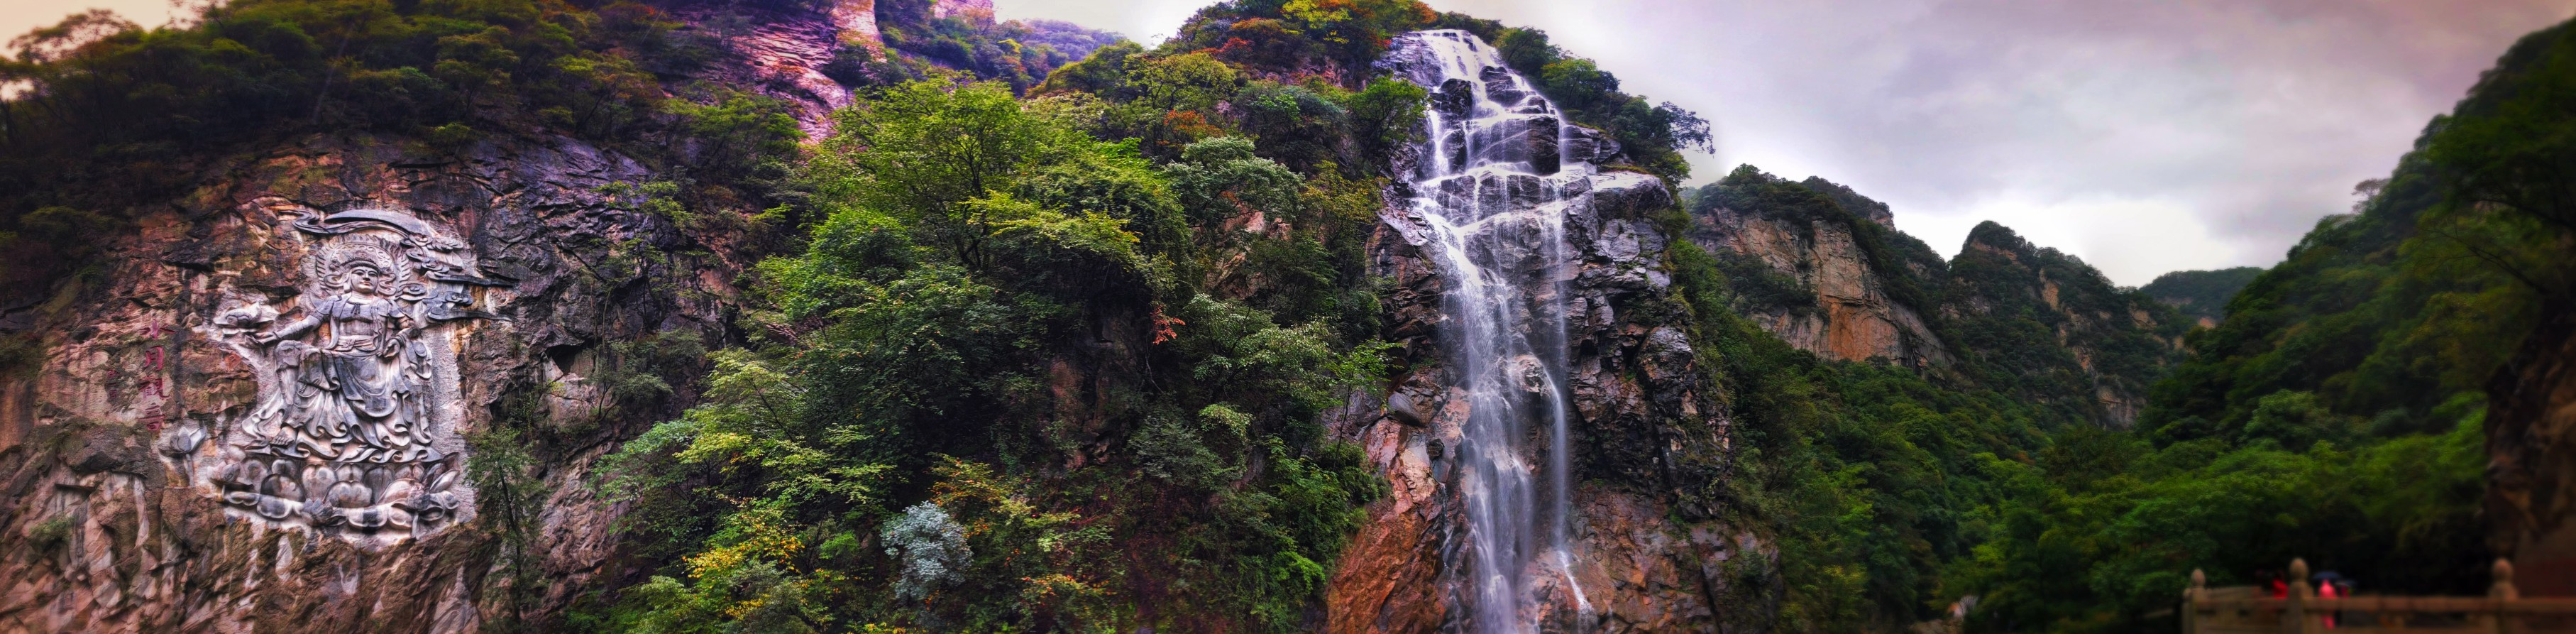 Waterfall at Taibai Mountain National Park Panoramic 1